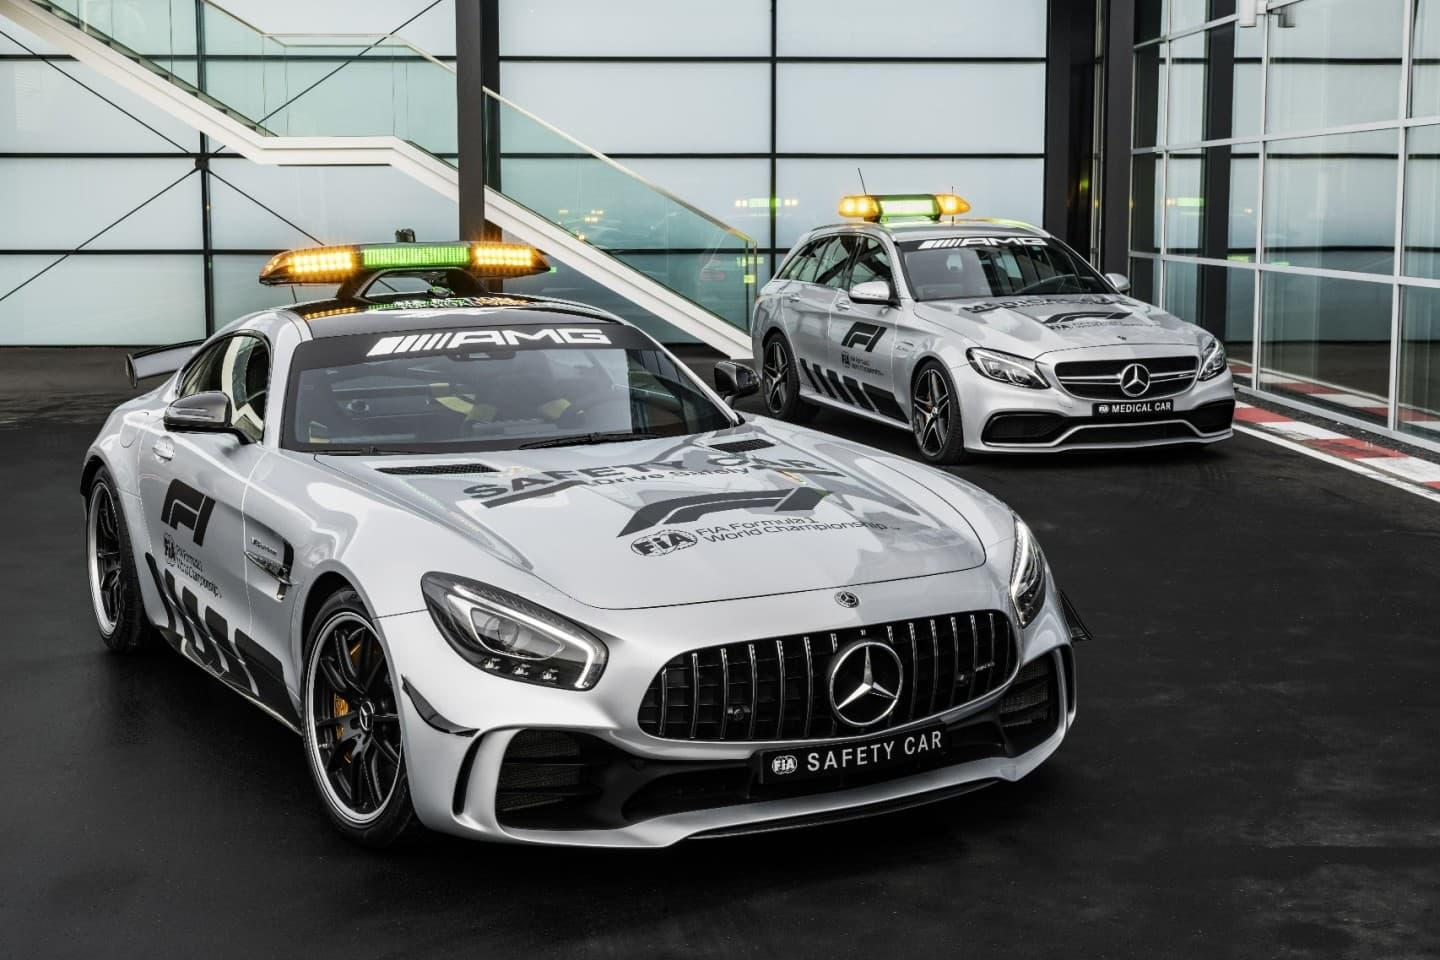 f1_2018_mercedes_amg_gt_r_safety_car_12